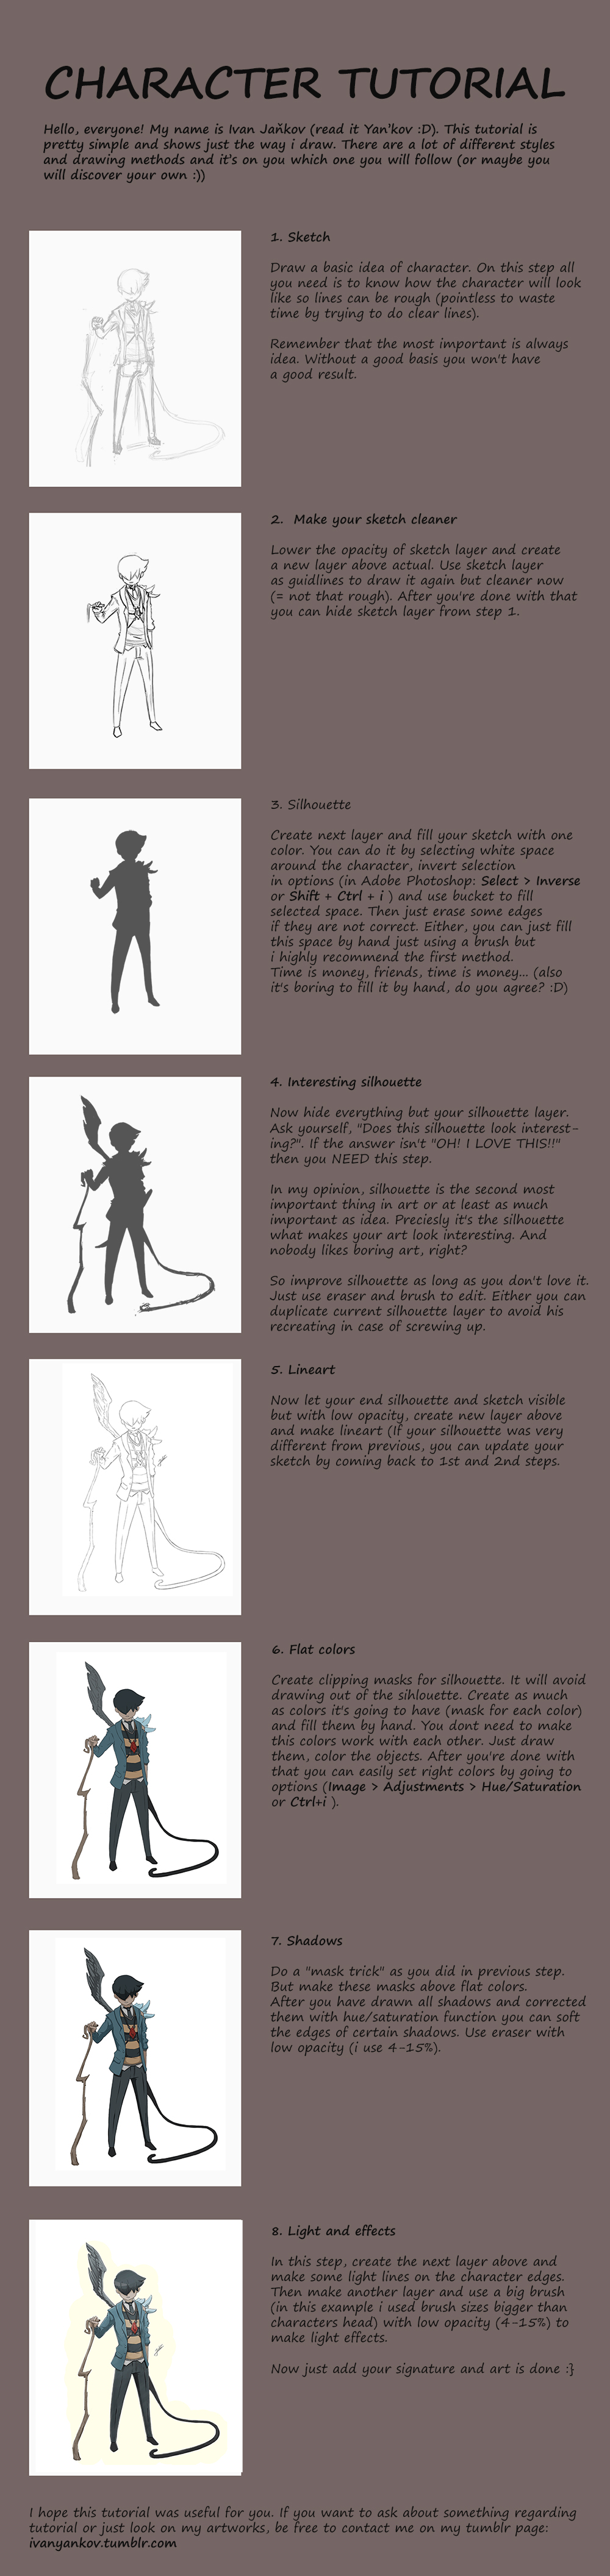 Character tutorial